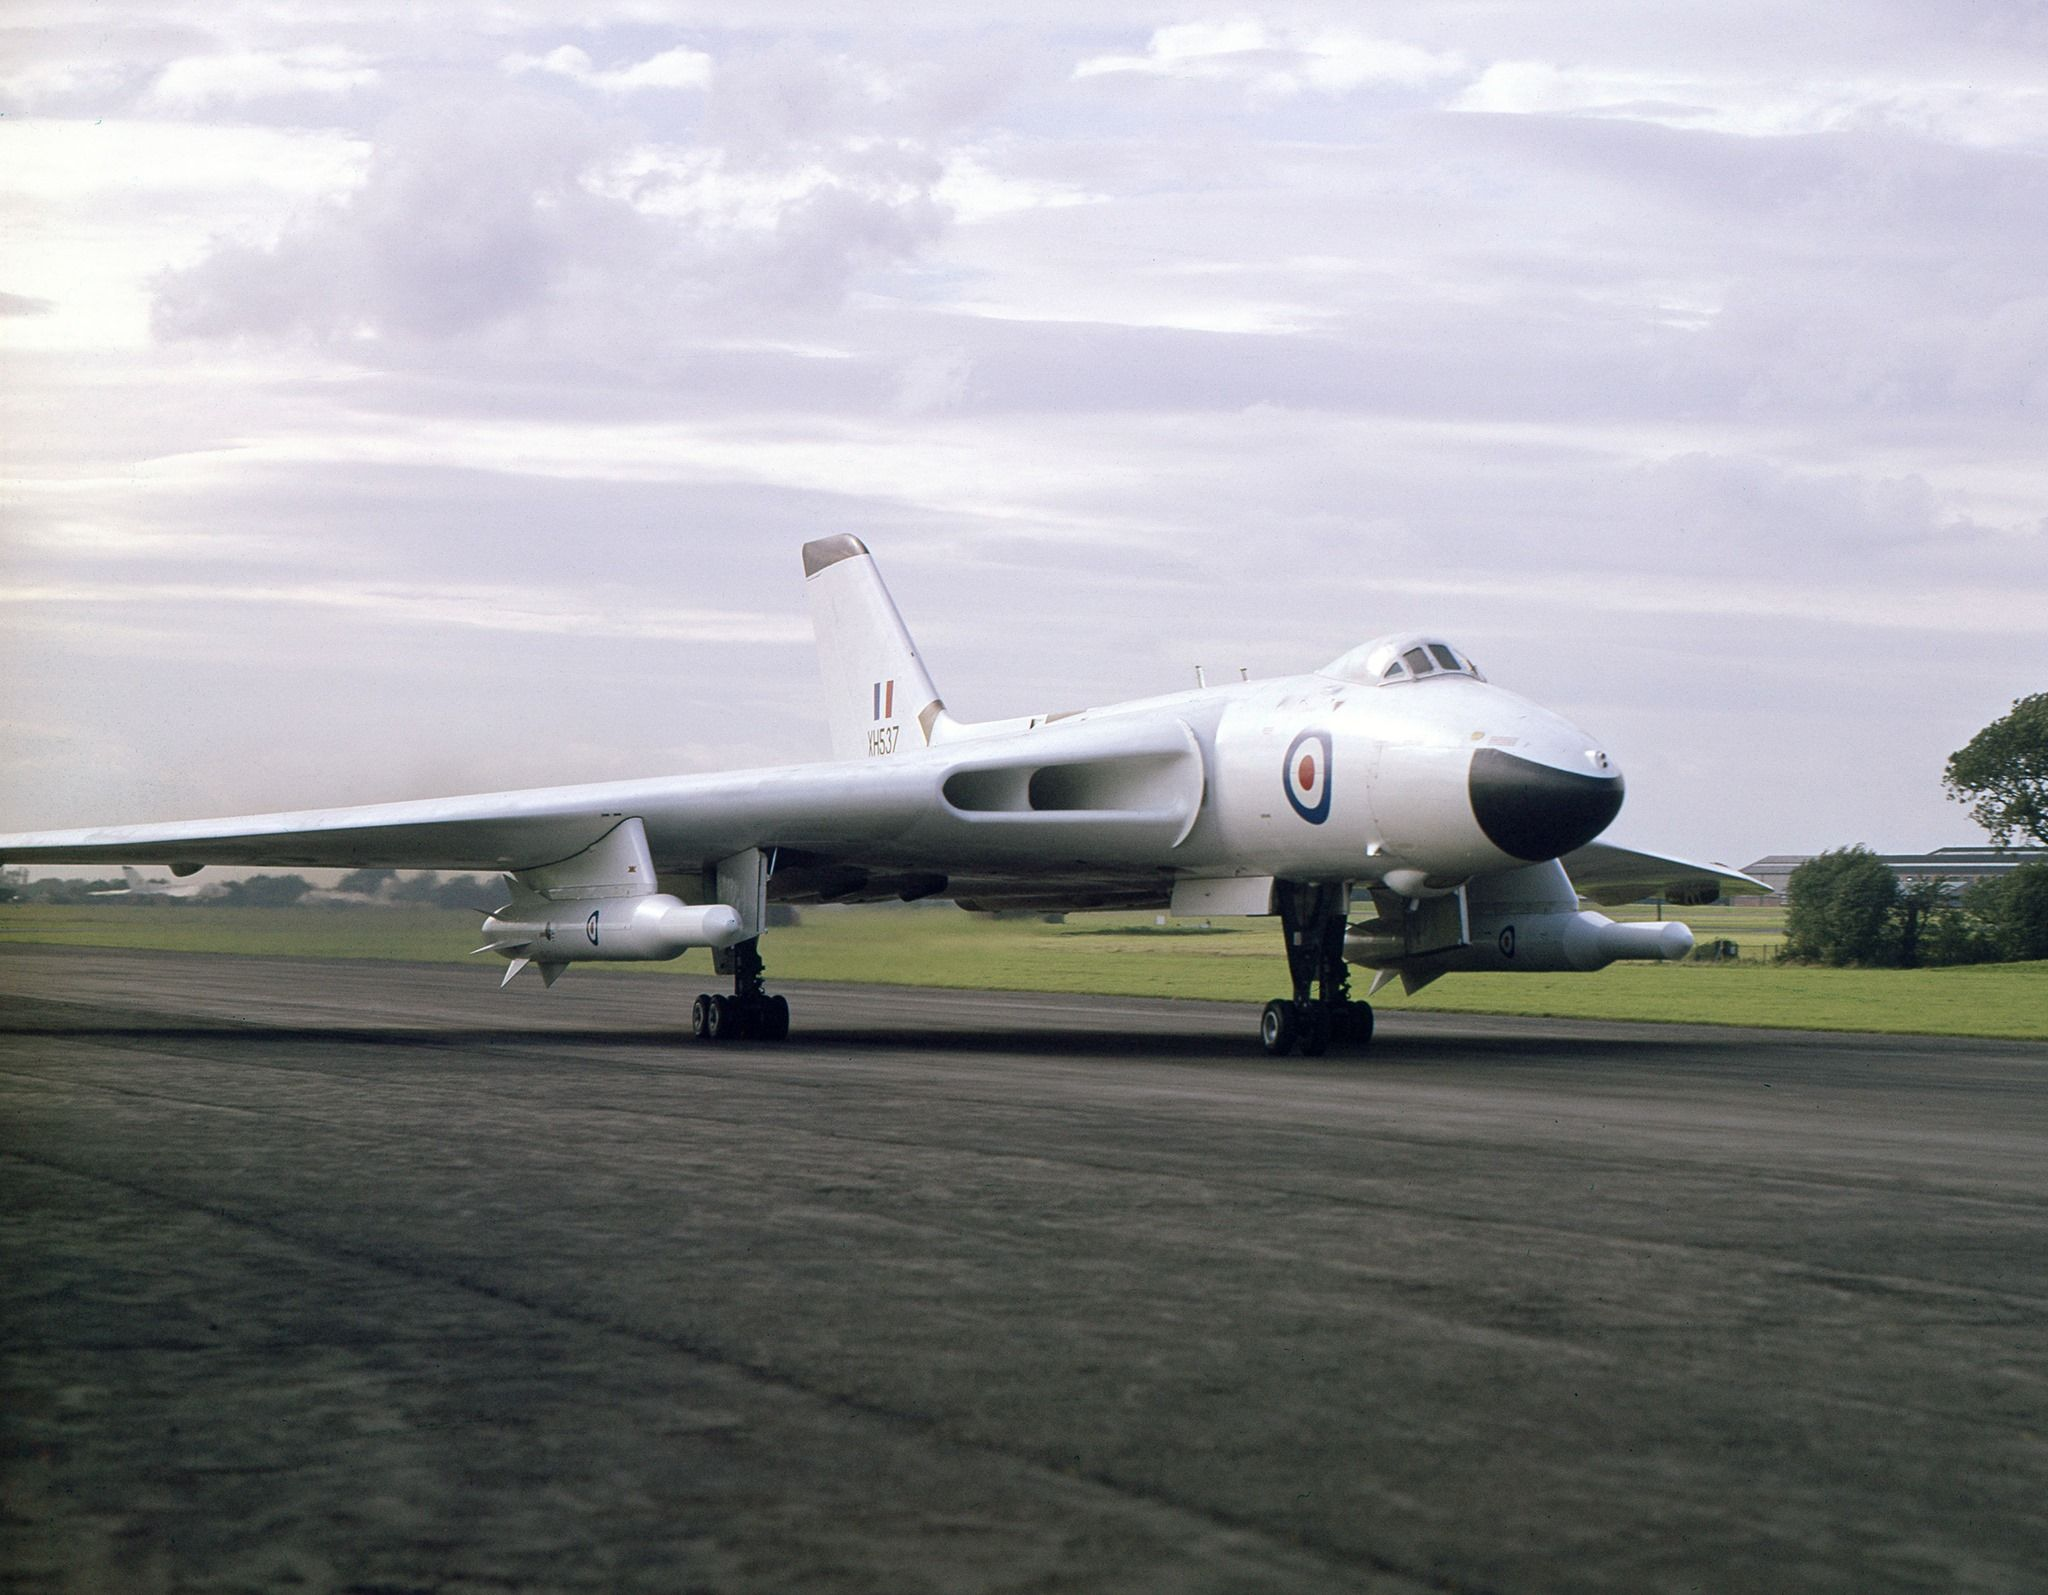 Avro Vulcan B.Mk2 XH537 with Skybolt missiles taken on 29th June ...